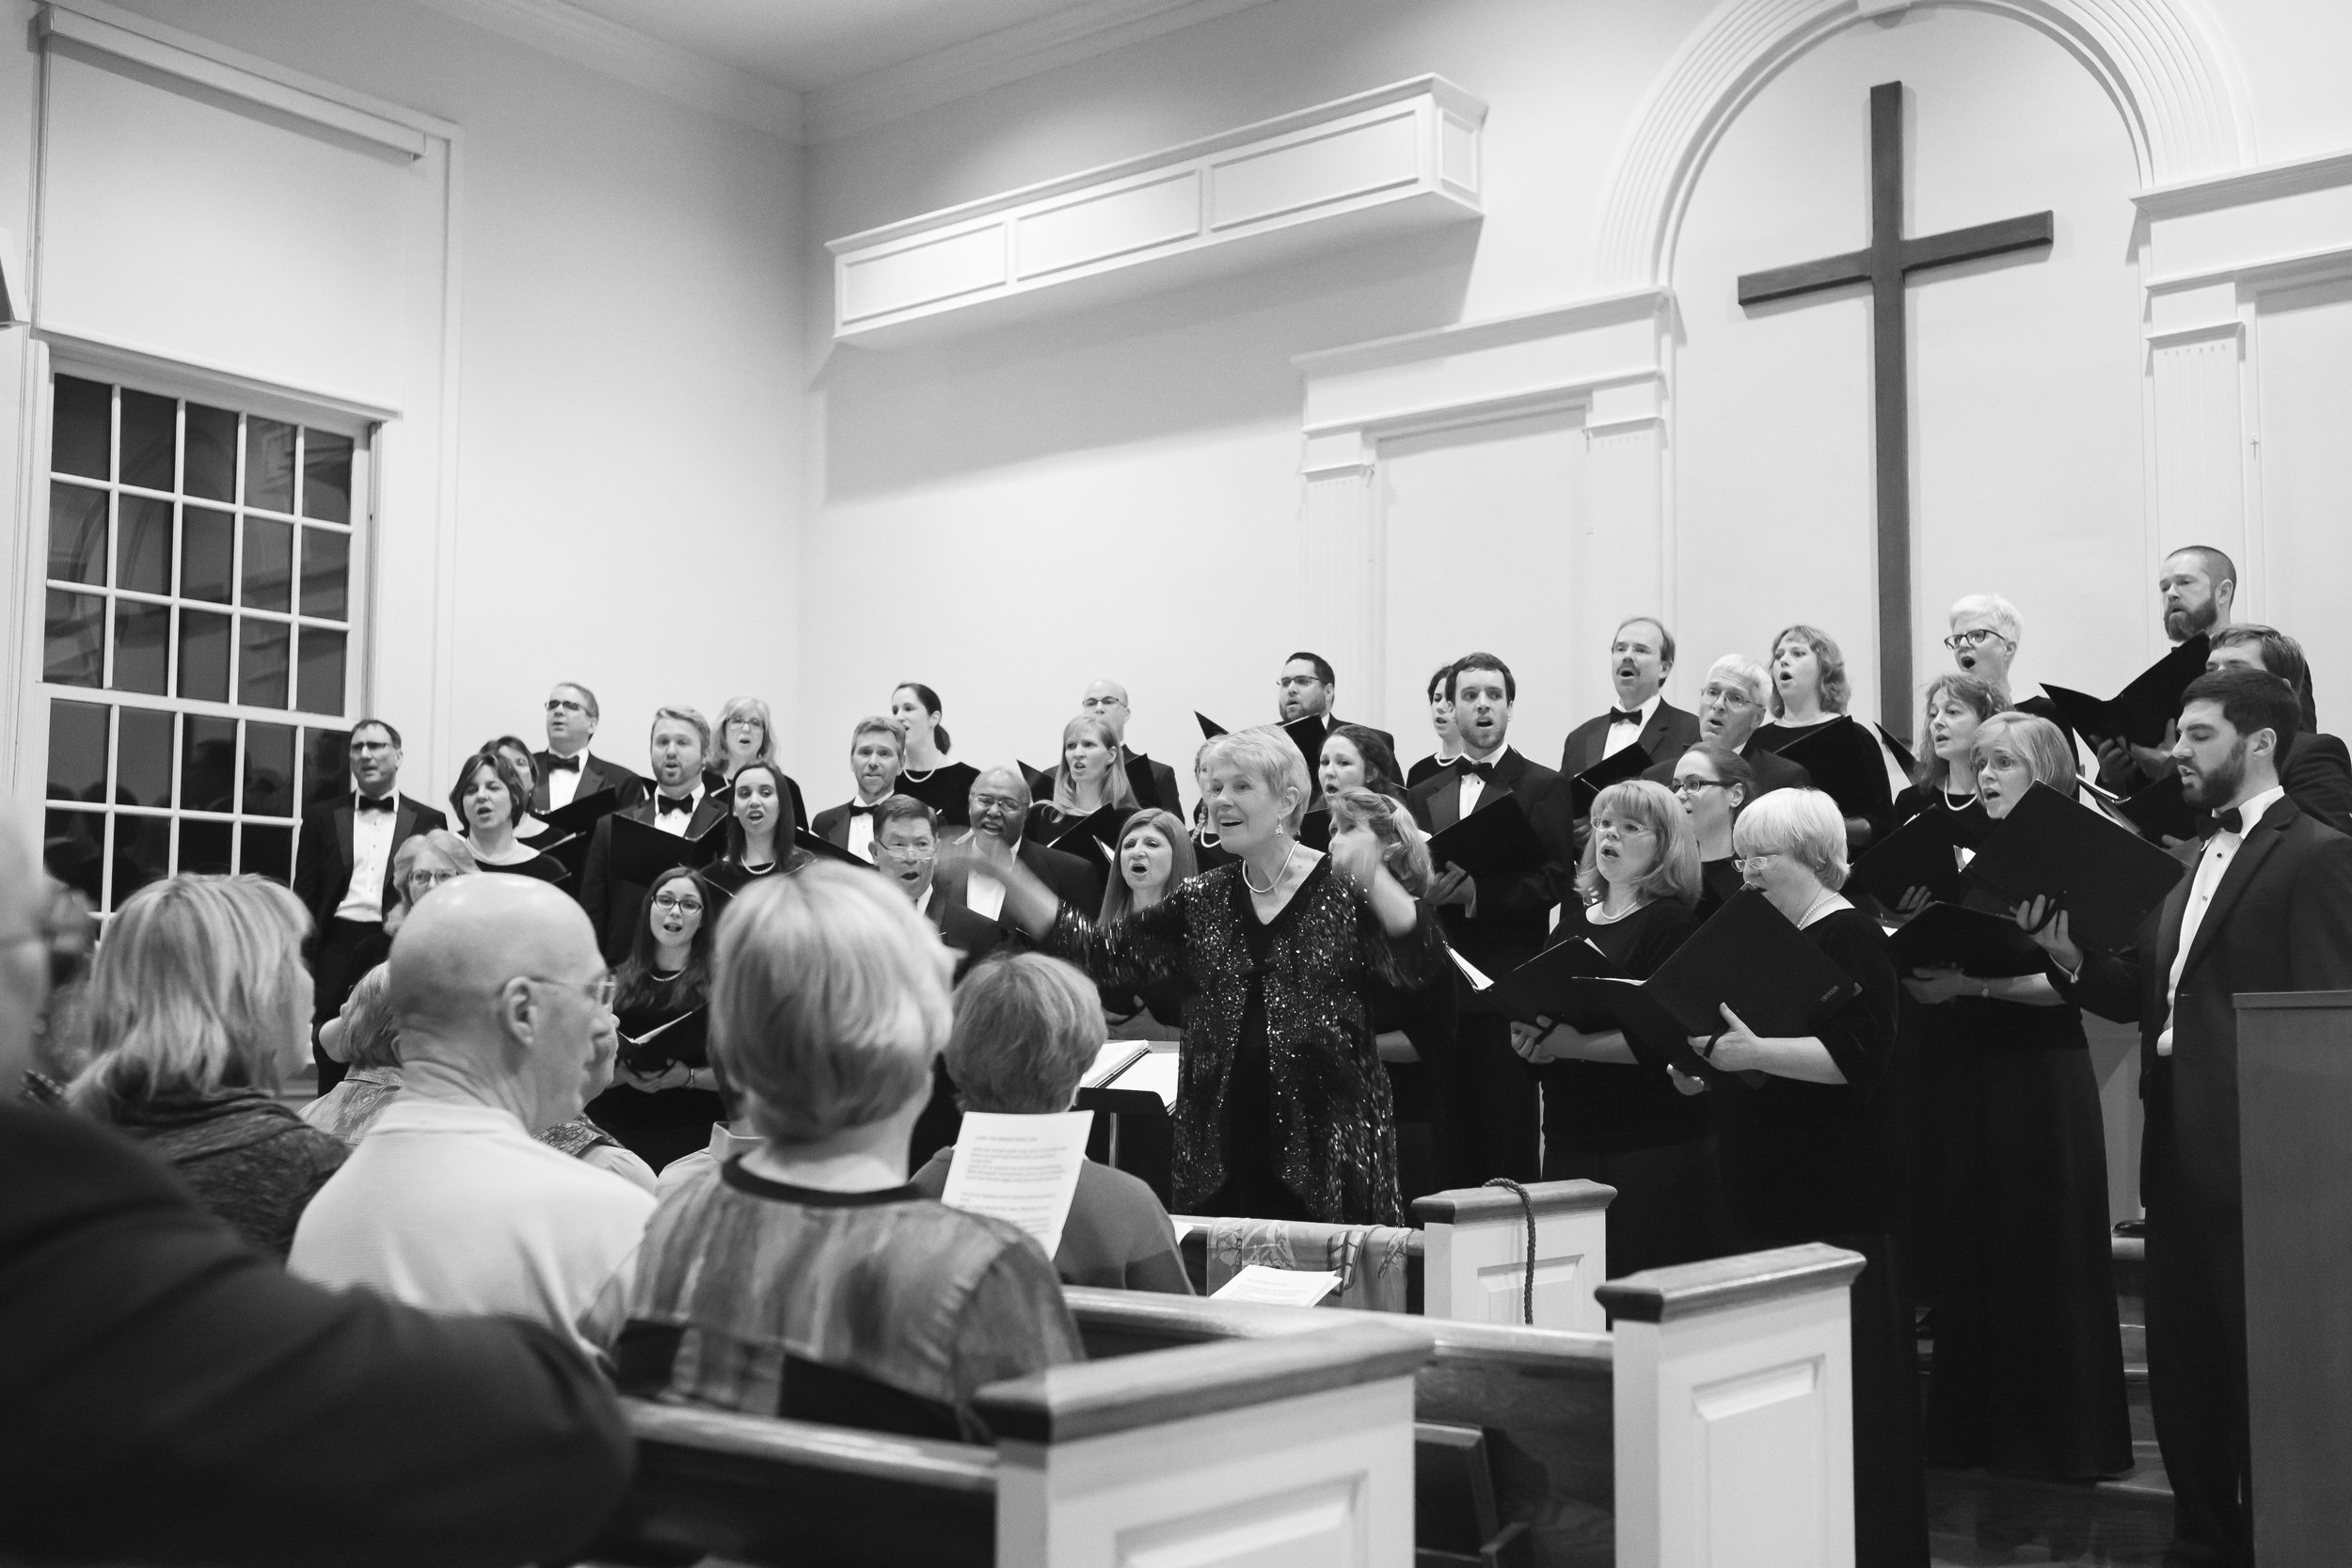 The Virginia Consort performs for a full crowd at the 2015 Blue Ridge Christmas.